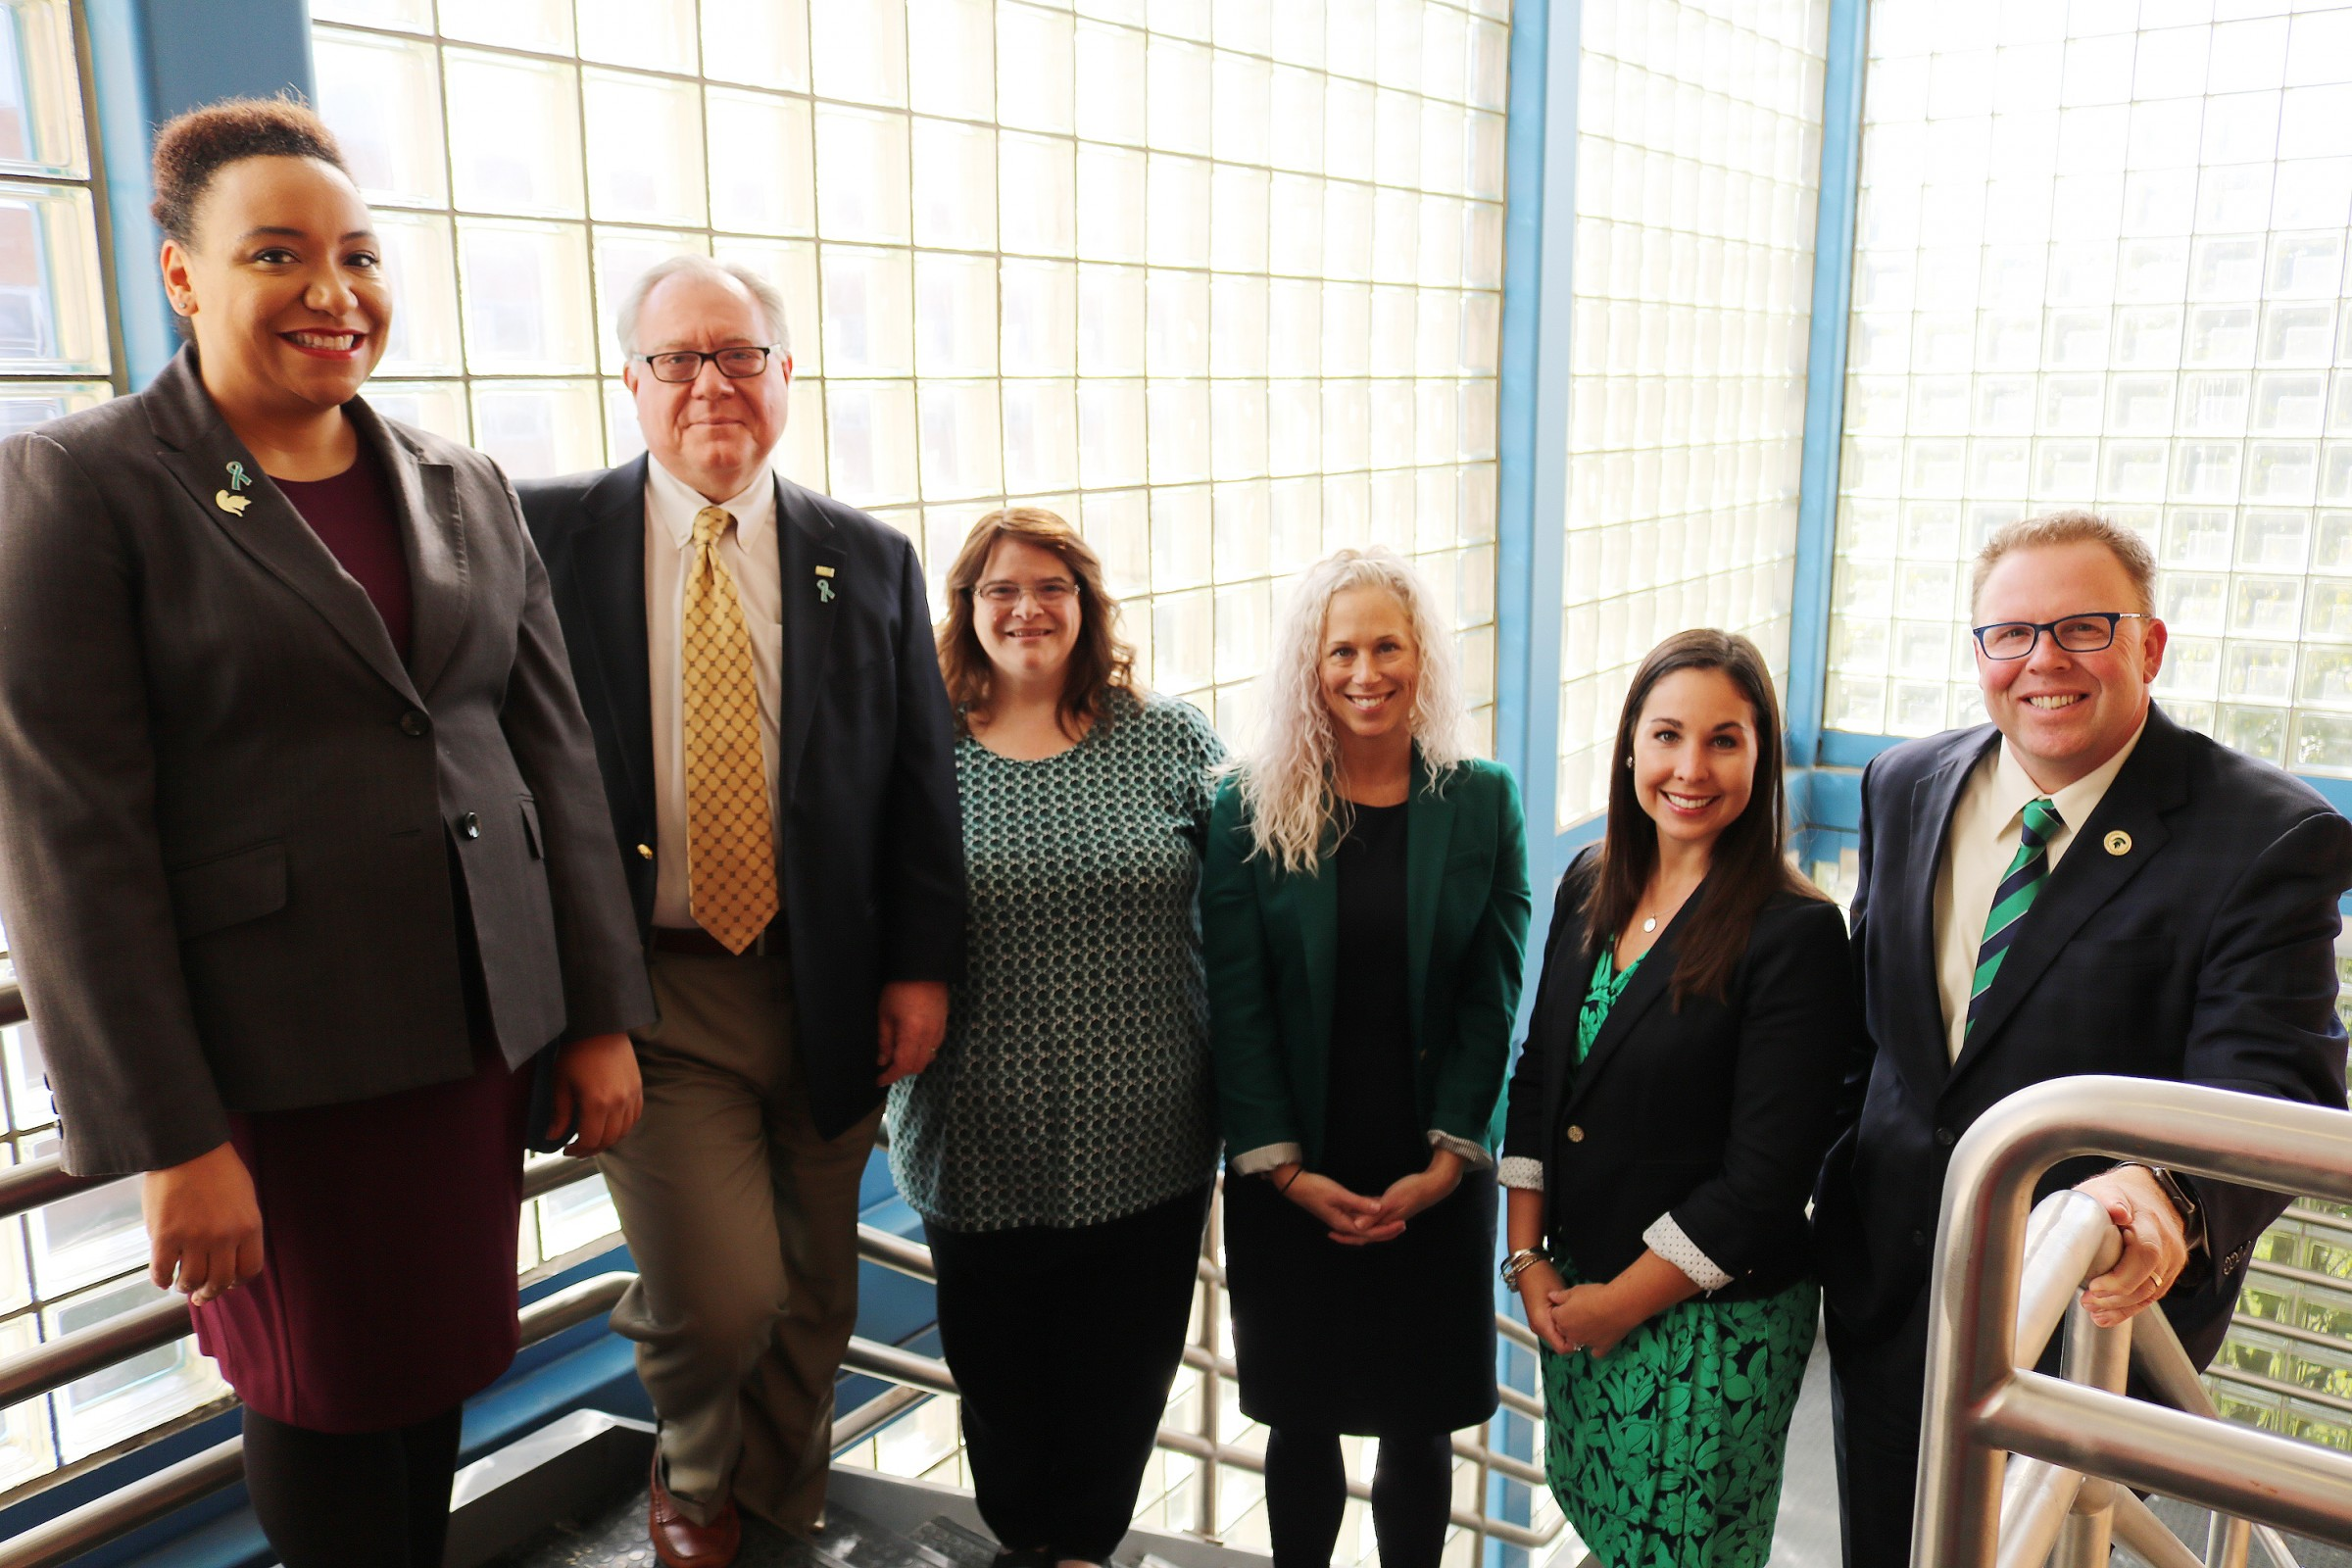 The college's development team members are (from left) Nicole Proctor-Kanyama, Stephen Bates, Shelly Jackson, Jennifer Jennings, Kaleigh Jaeger-Hale, and Marty Bailey.